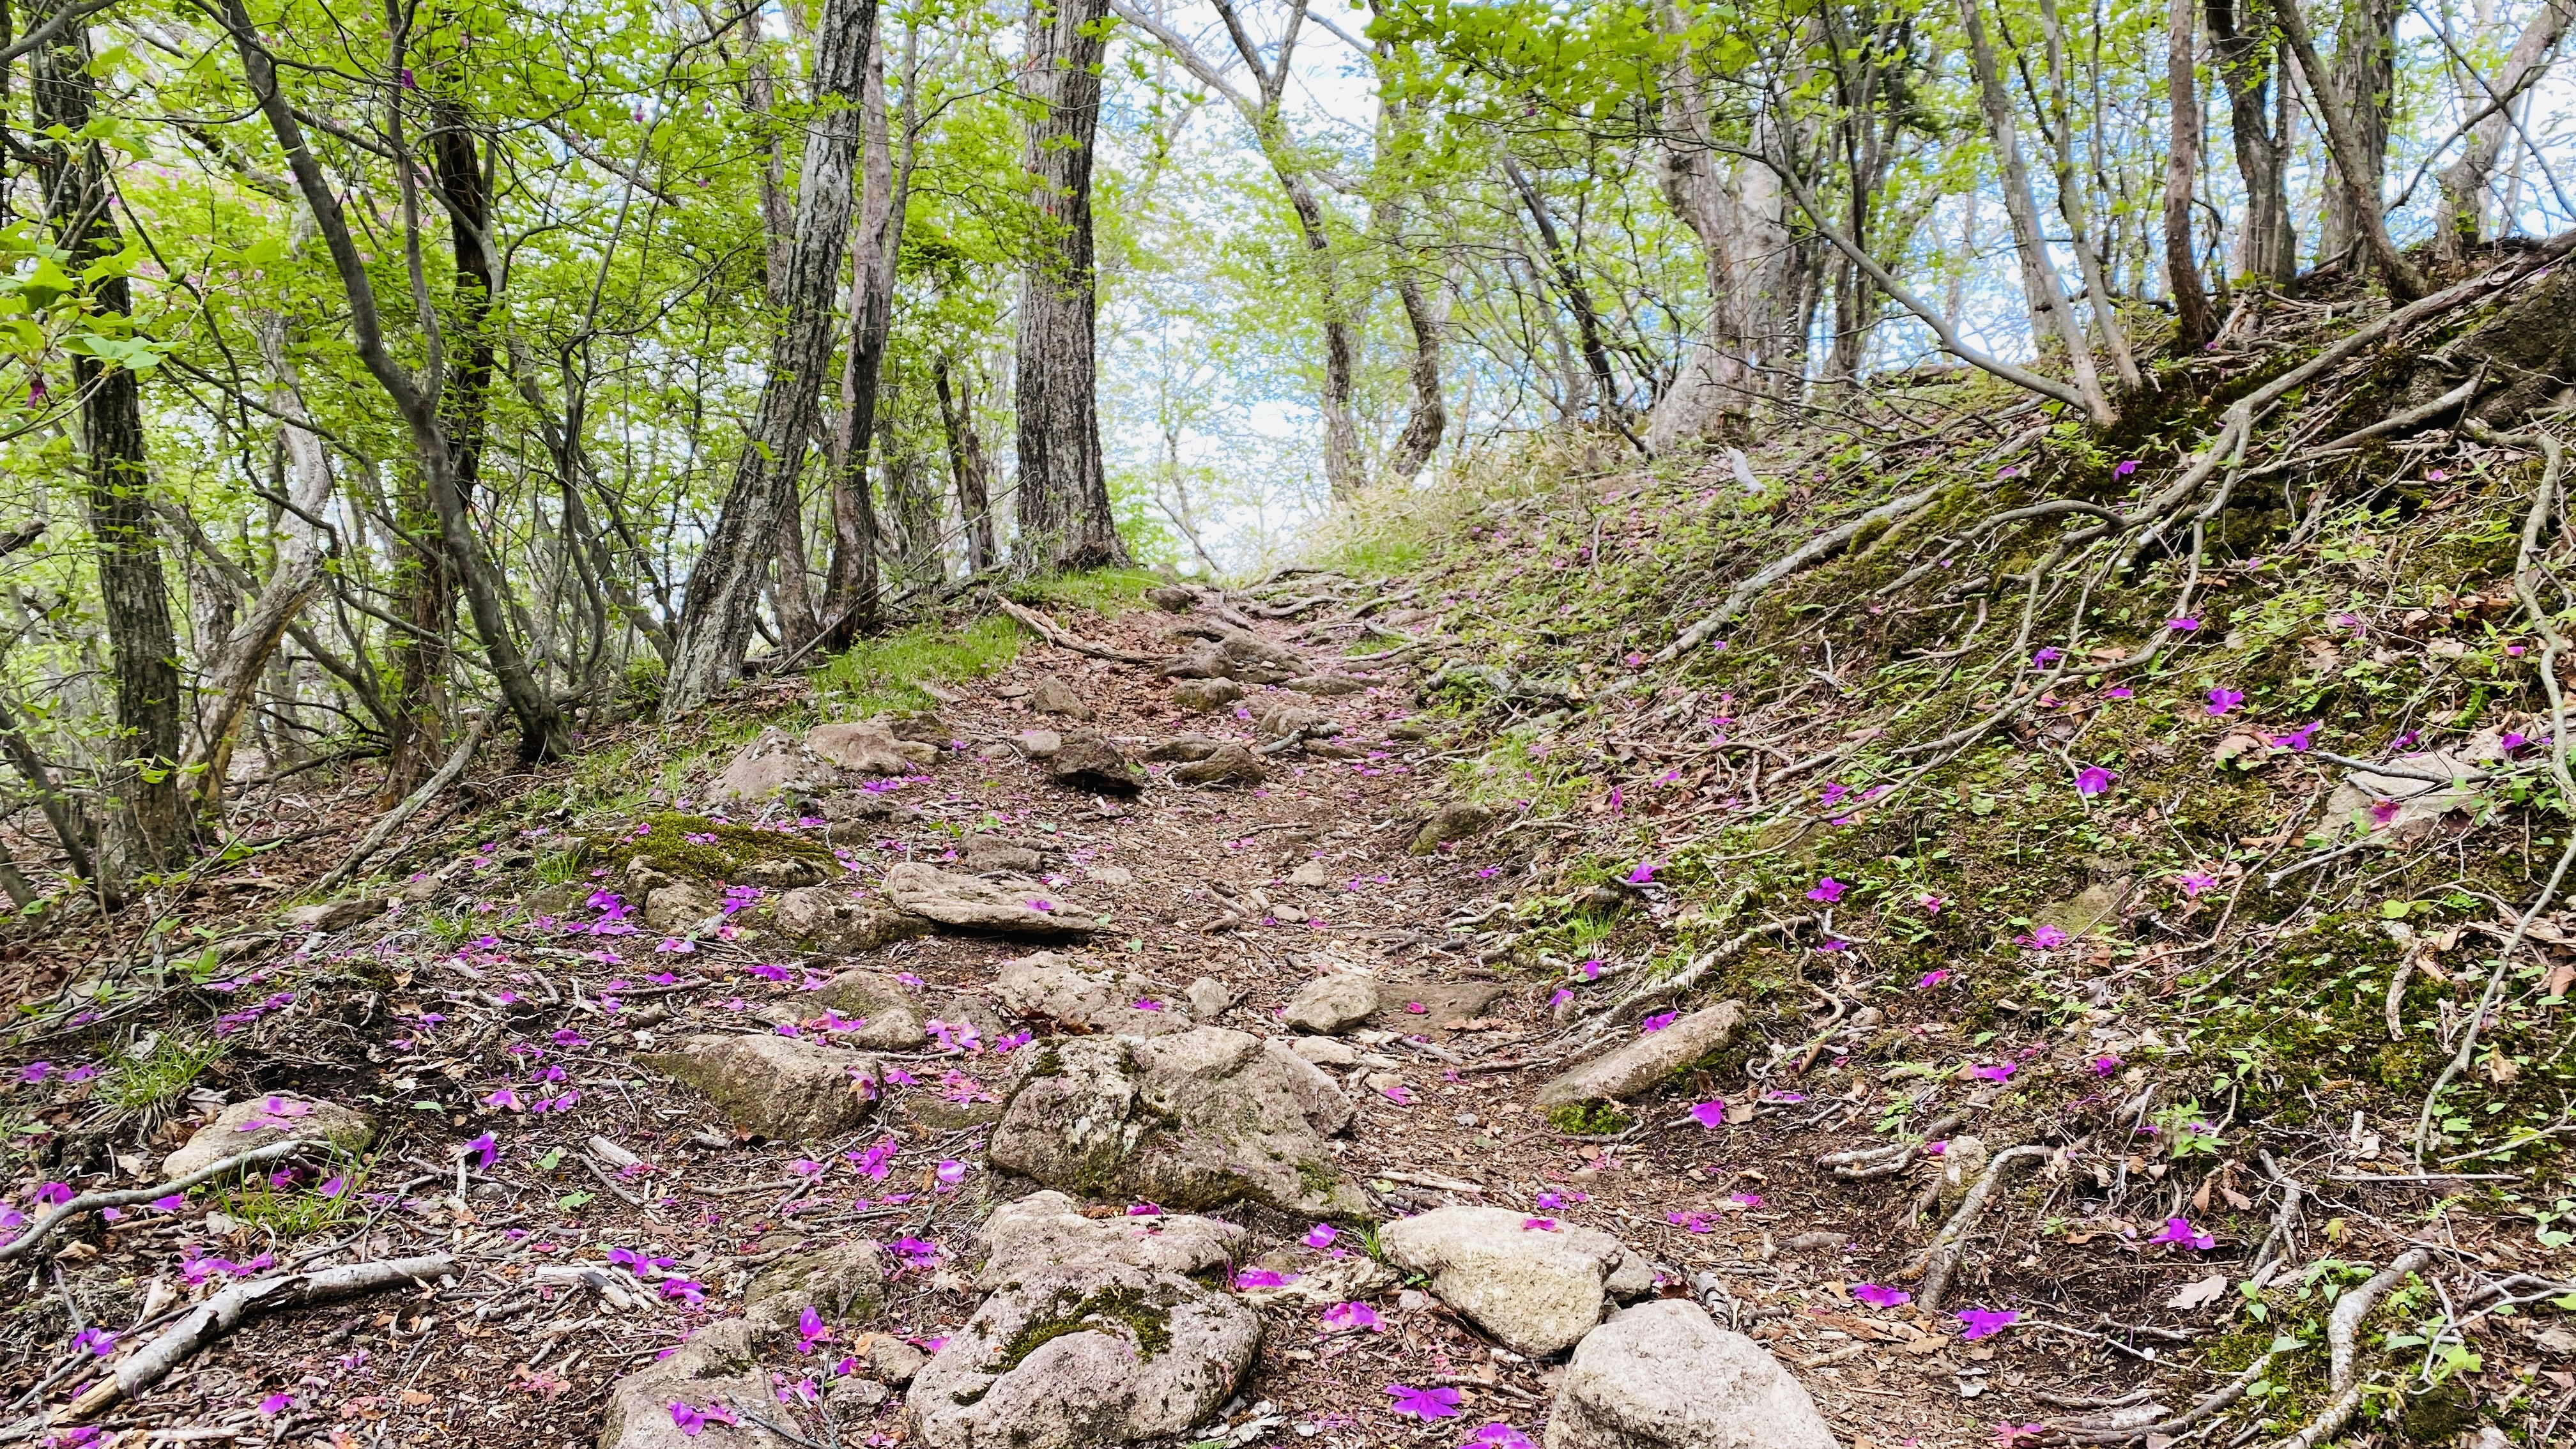 rocky path coming up to crest in trail with purple azalea petals on the ground